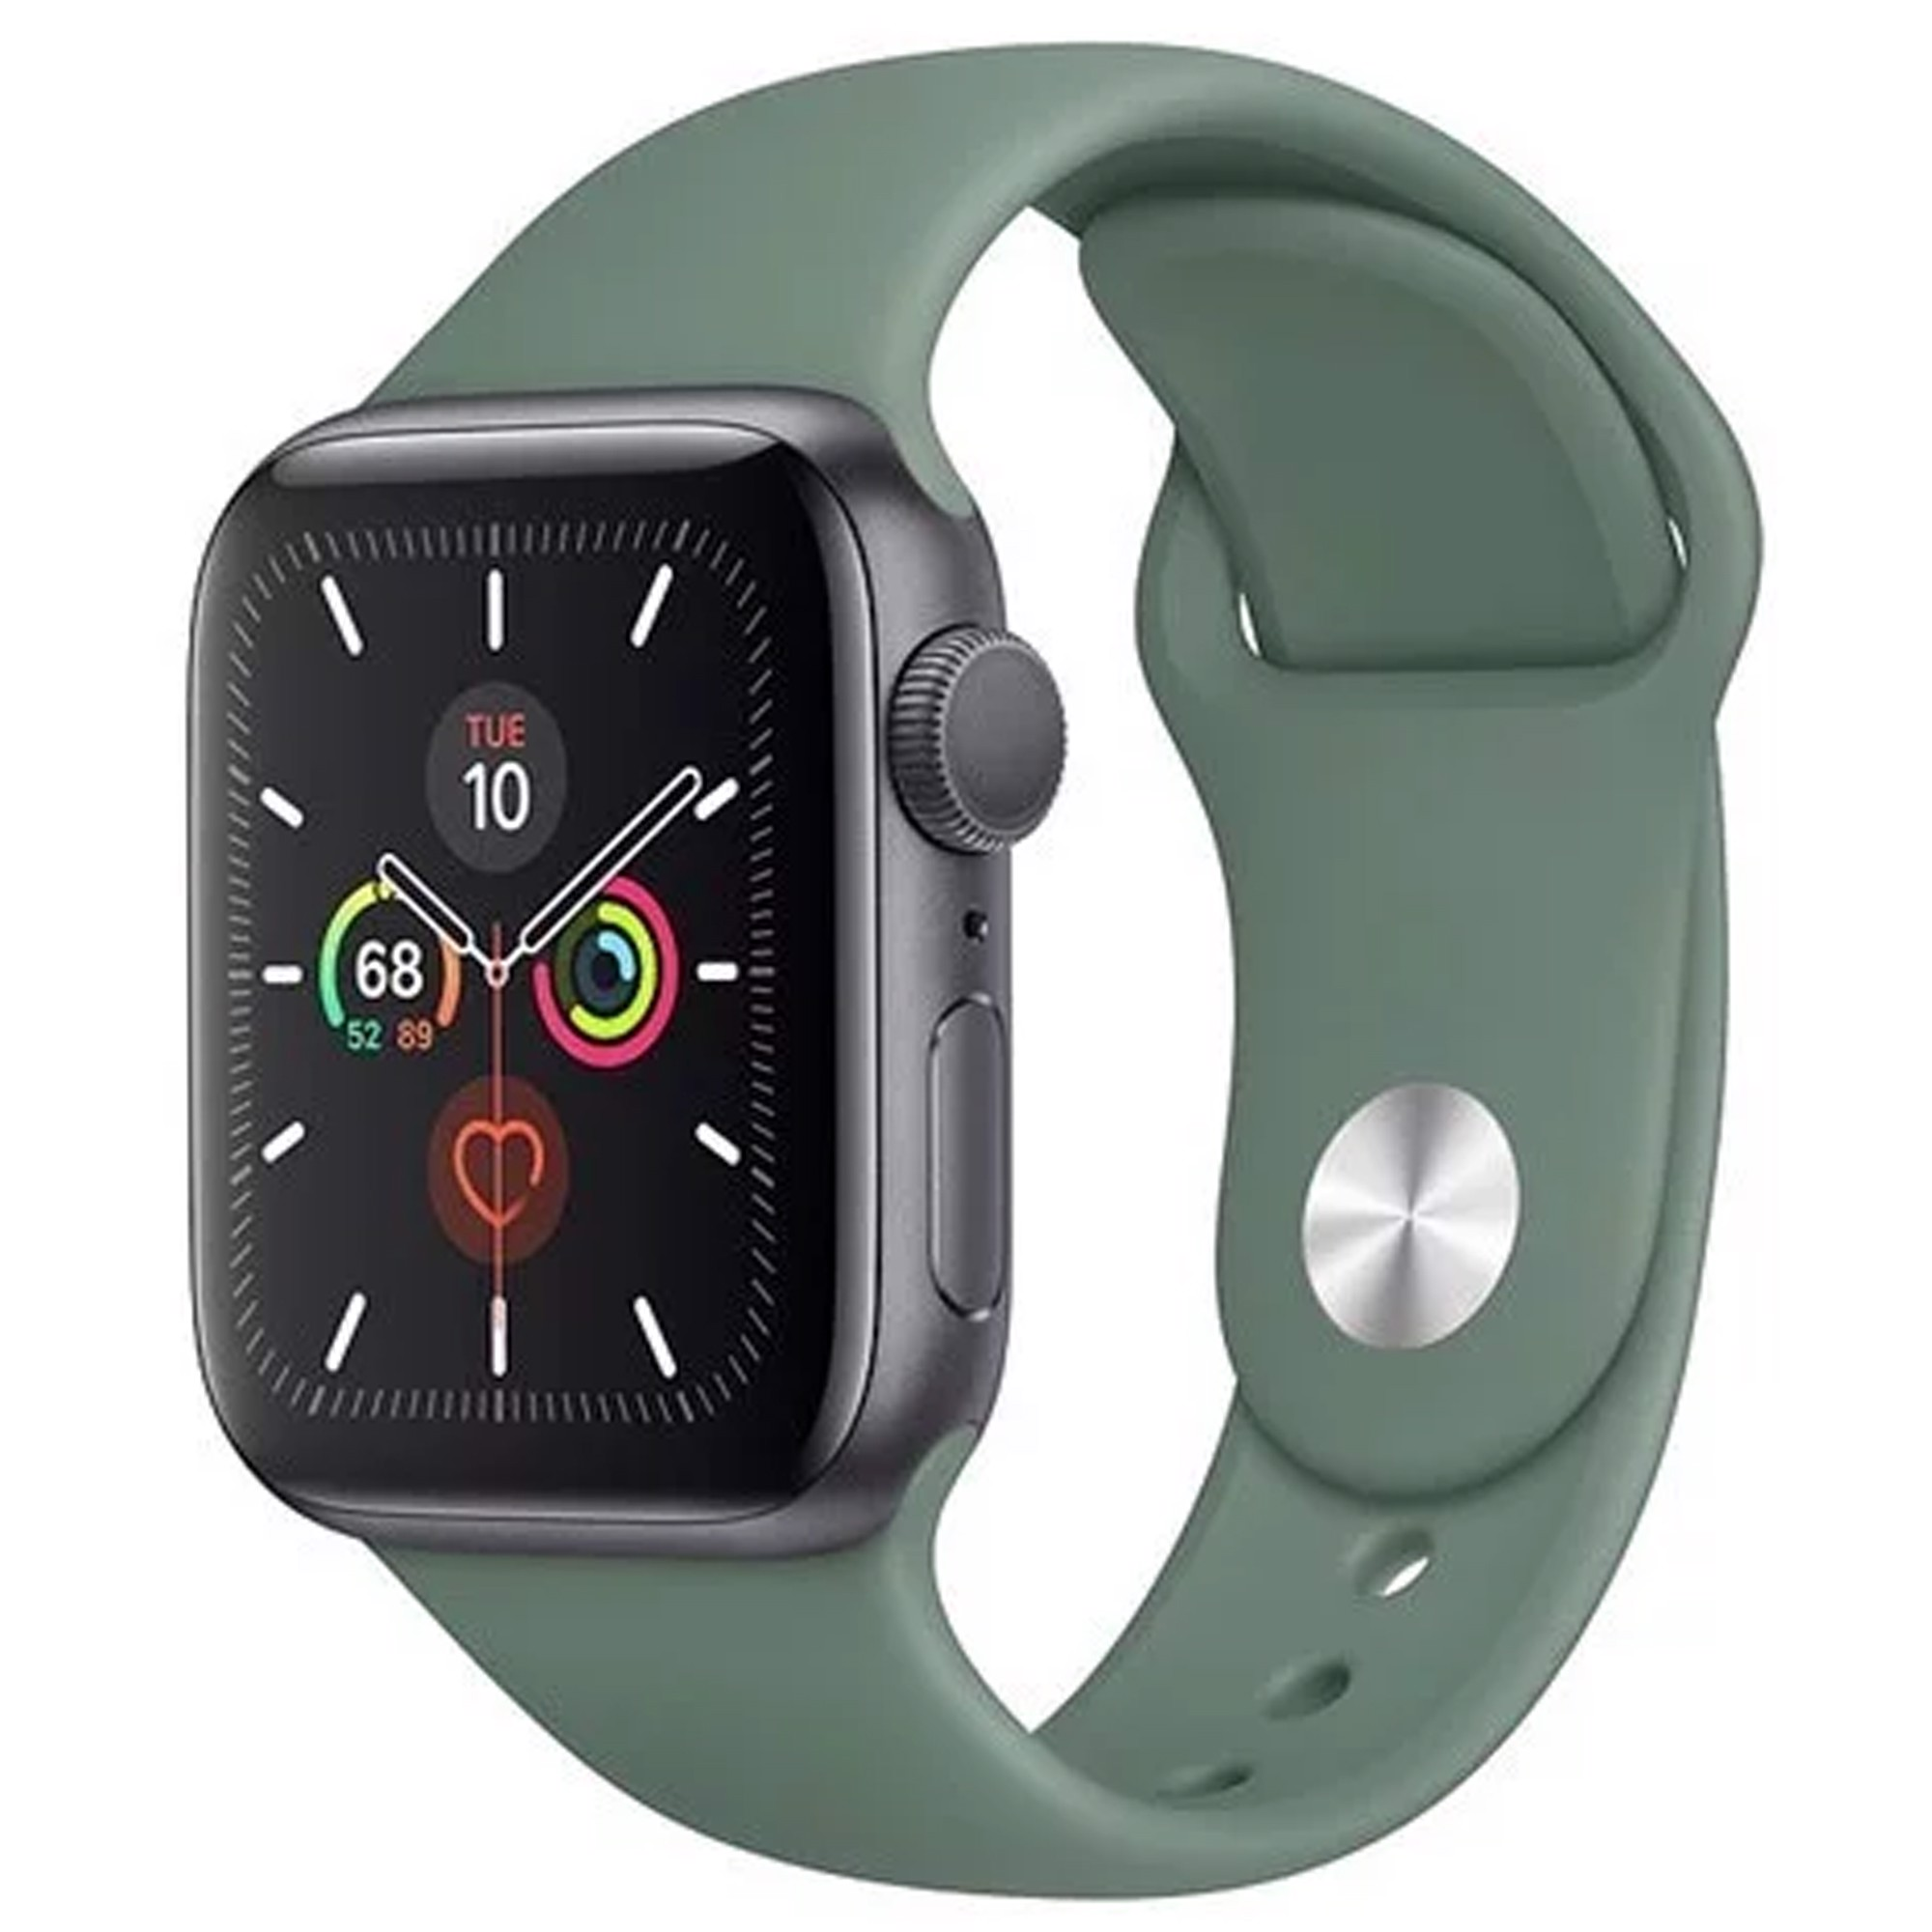 Apple Watch Series 5 KĐ-DX 40mm Sport MWV82 LL Zin Đẹp 99% Fullbox PK Zin BH Apple 7/6/2021 TL BH 01 Tháng